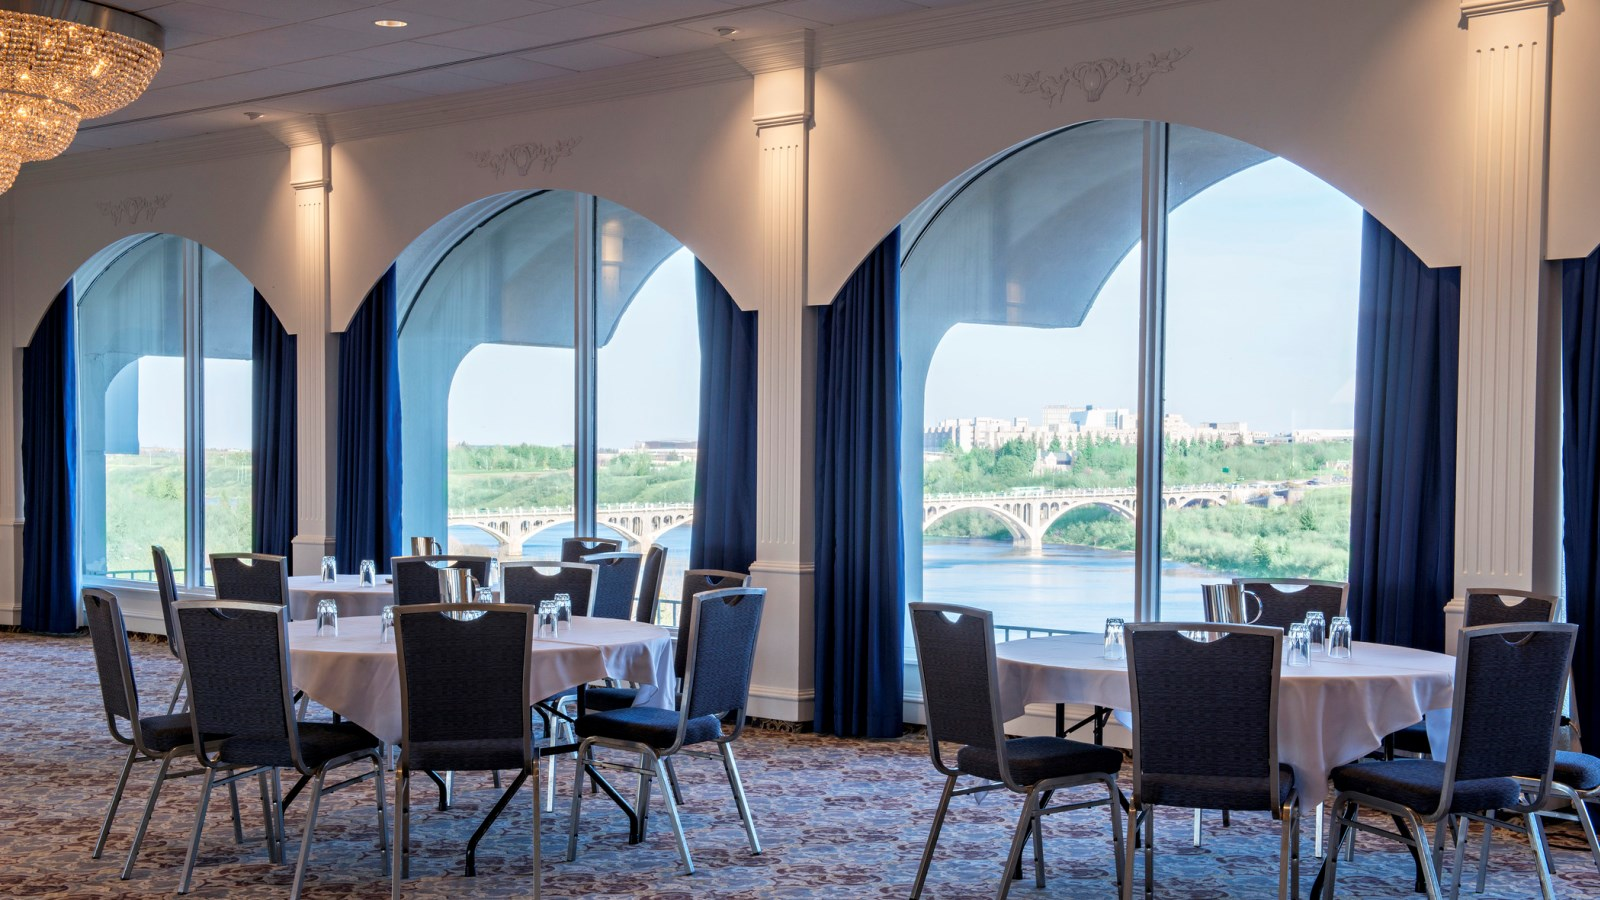 Saskatoon Conference and Meeting Facilities - Top of the Inn